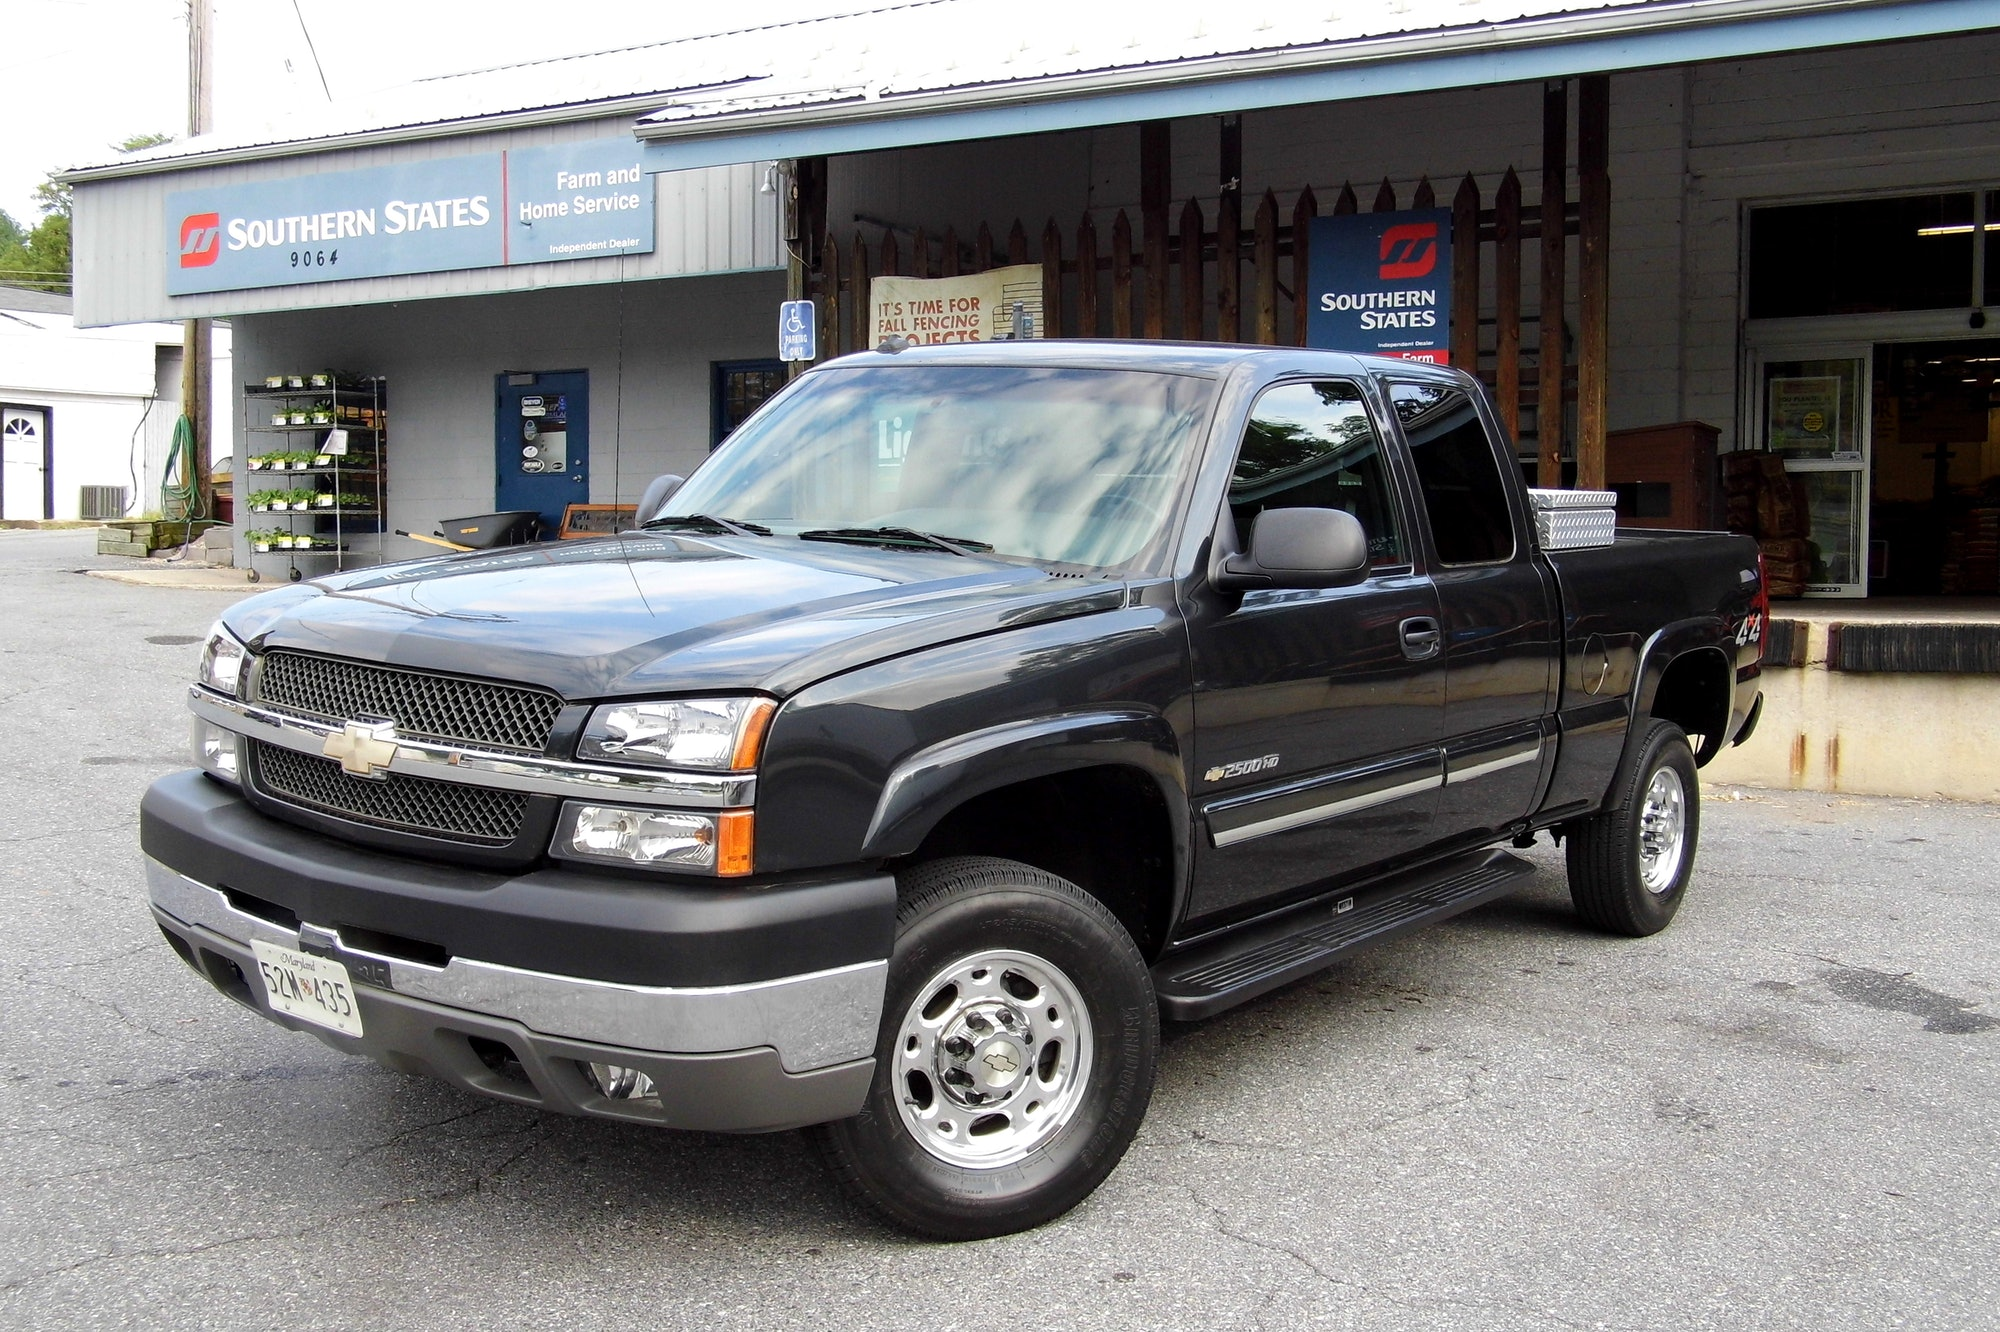 2003 Chevrolet Silverado 2500 HD Pick-Up Truck -- Still Going Strong After 13 Years On The Road, September 2016